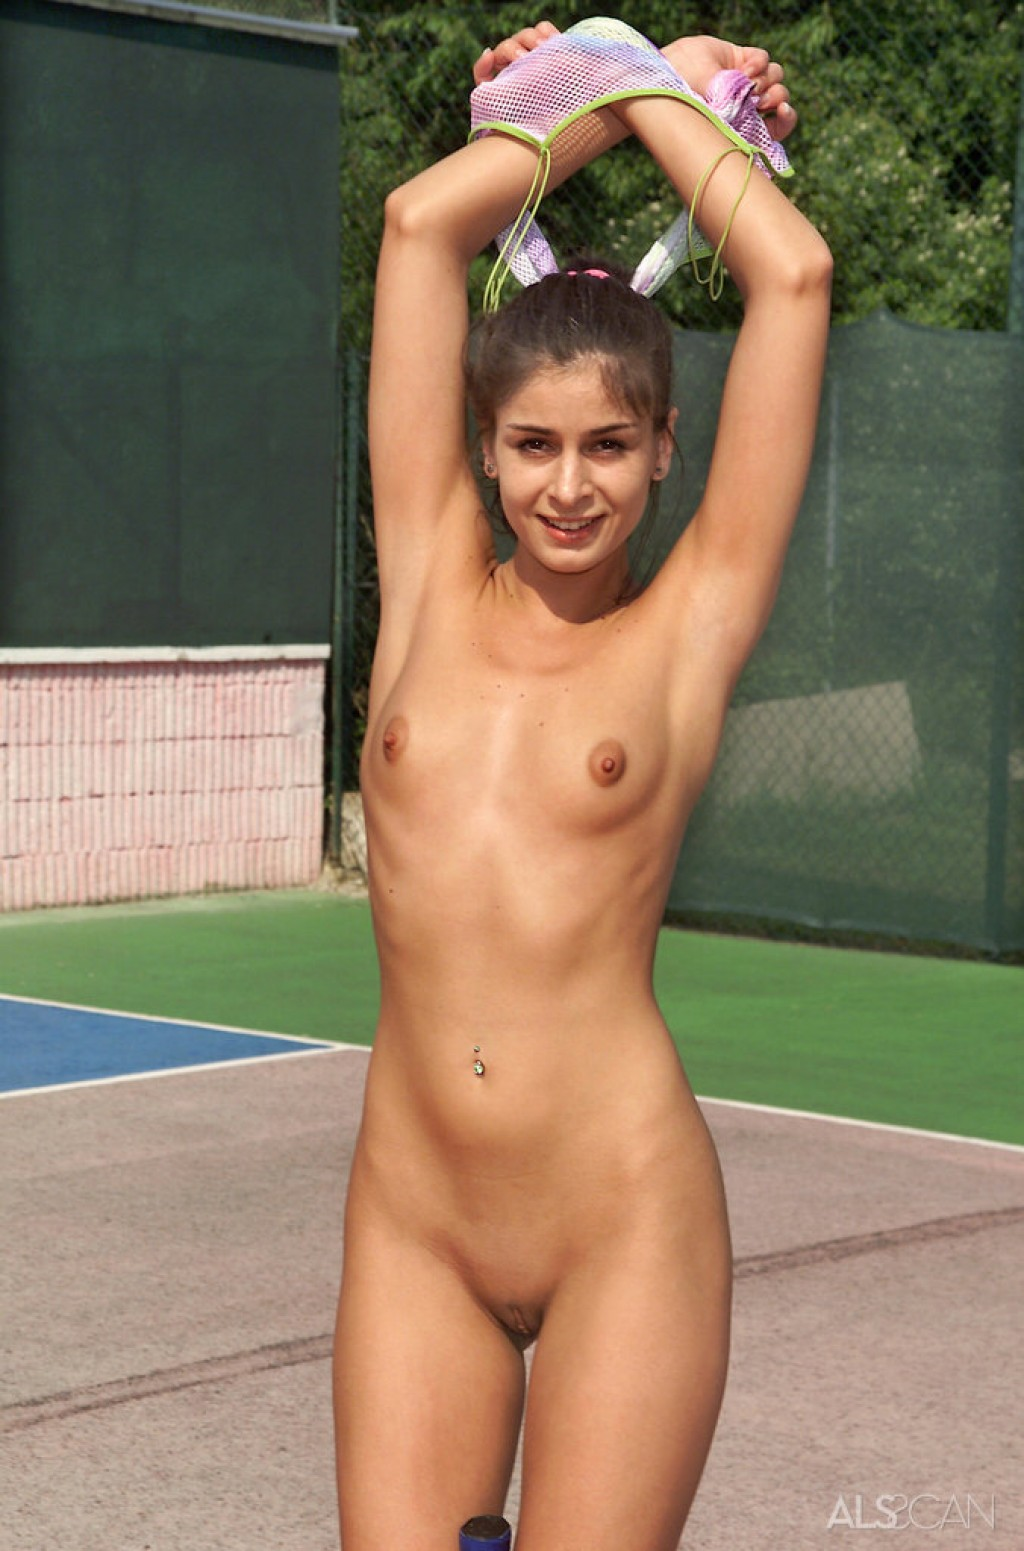 Lucy Lee & Nella nude pics in Tennis Queen from ALS SCAN